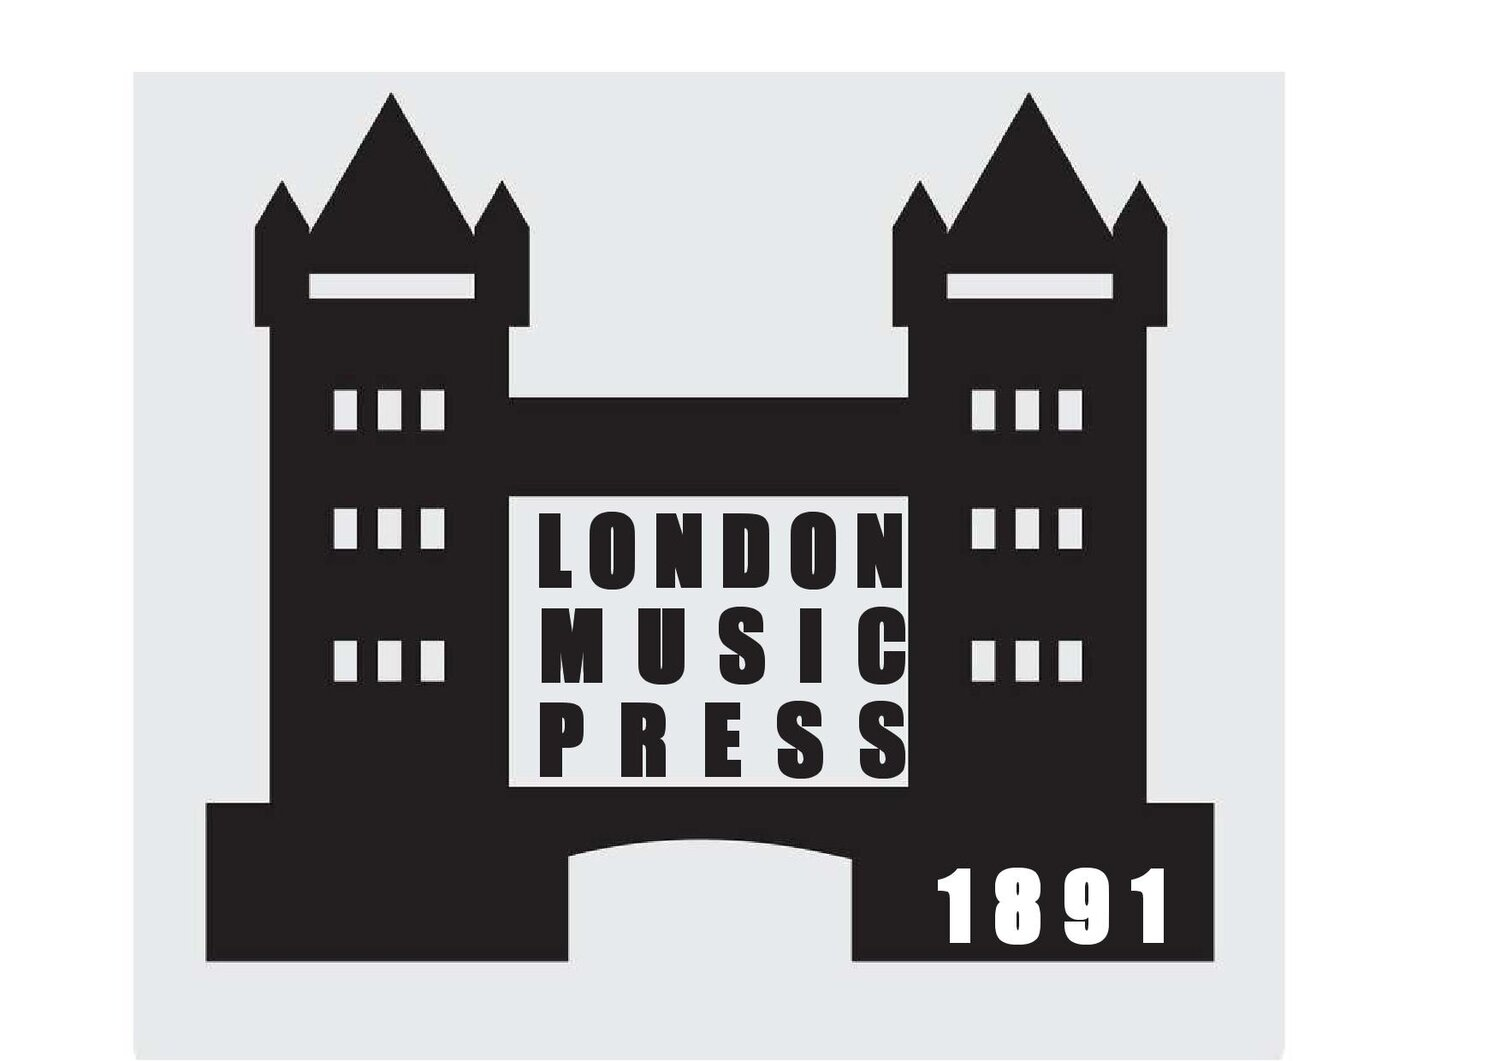 London Music Press